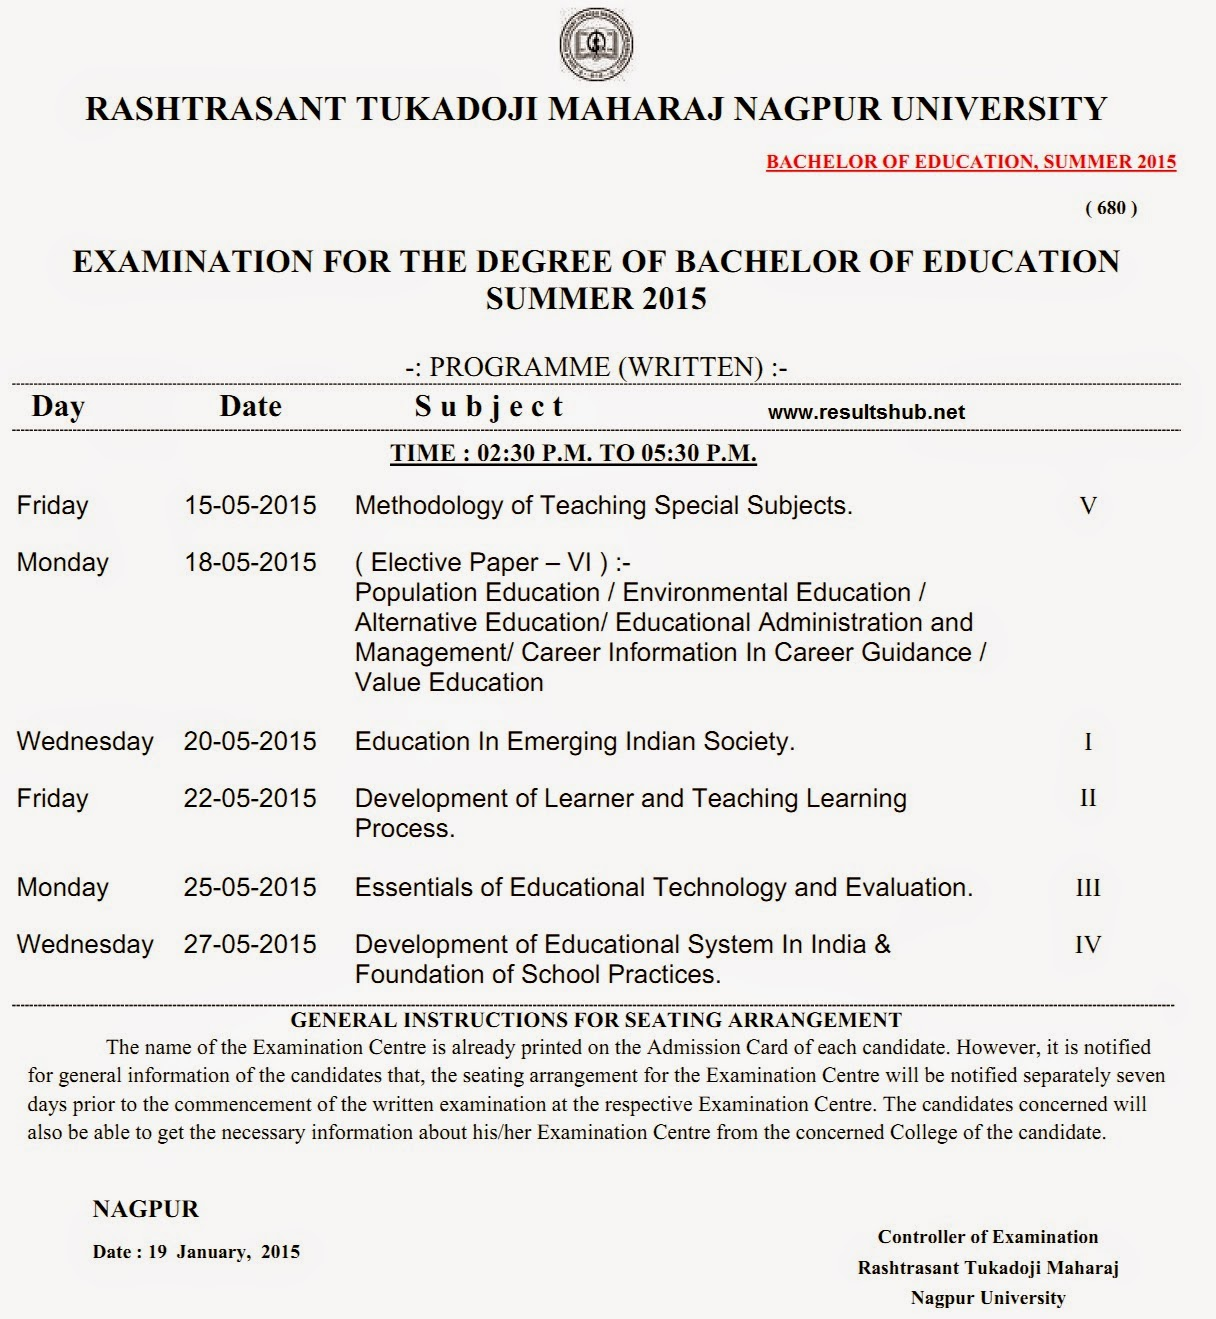 B.Ed. Summer 2015 Timetable Nagpur University